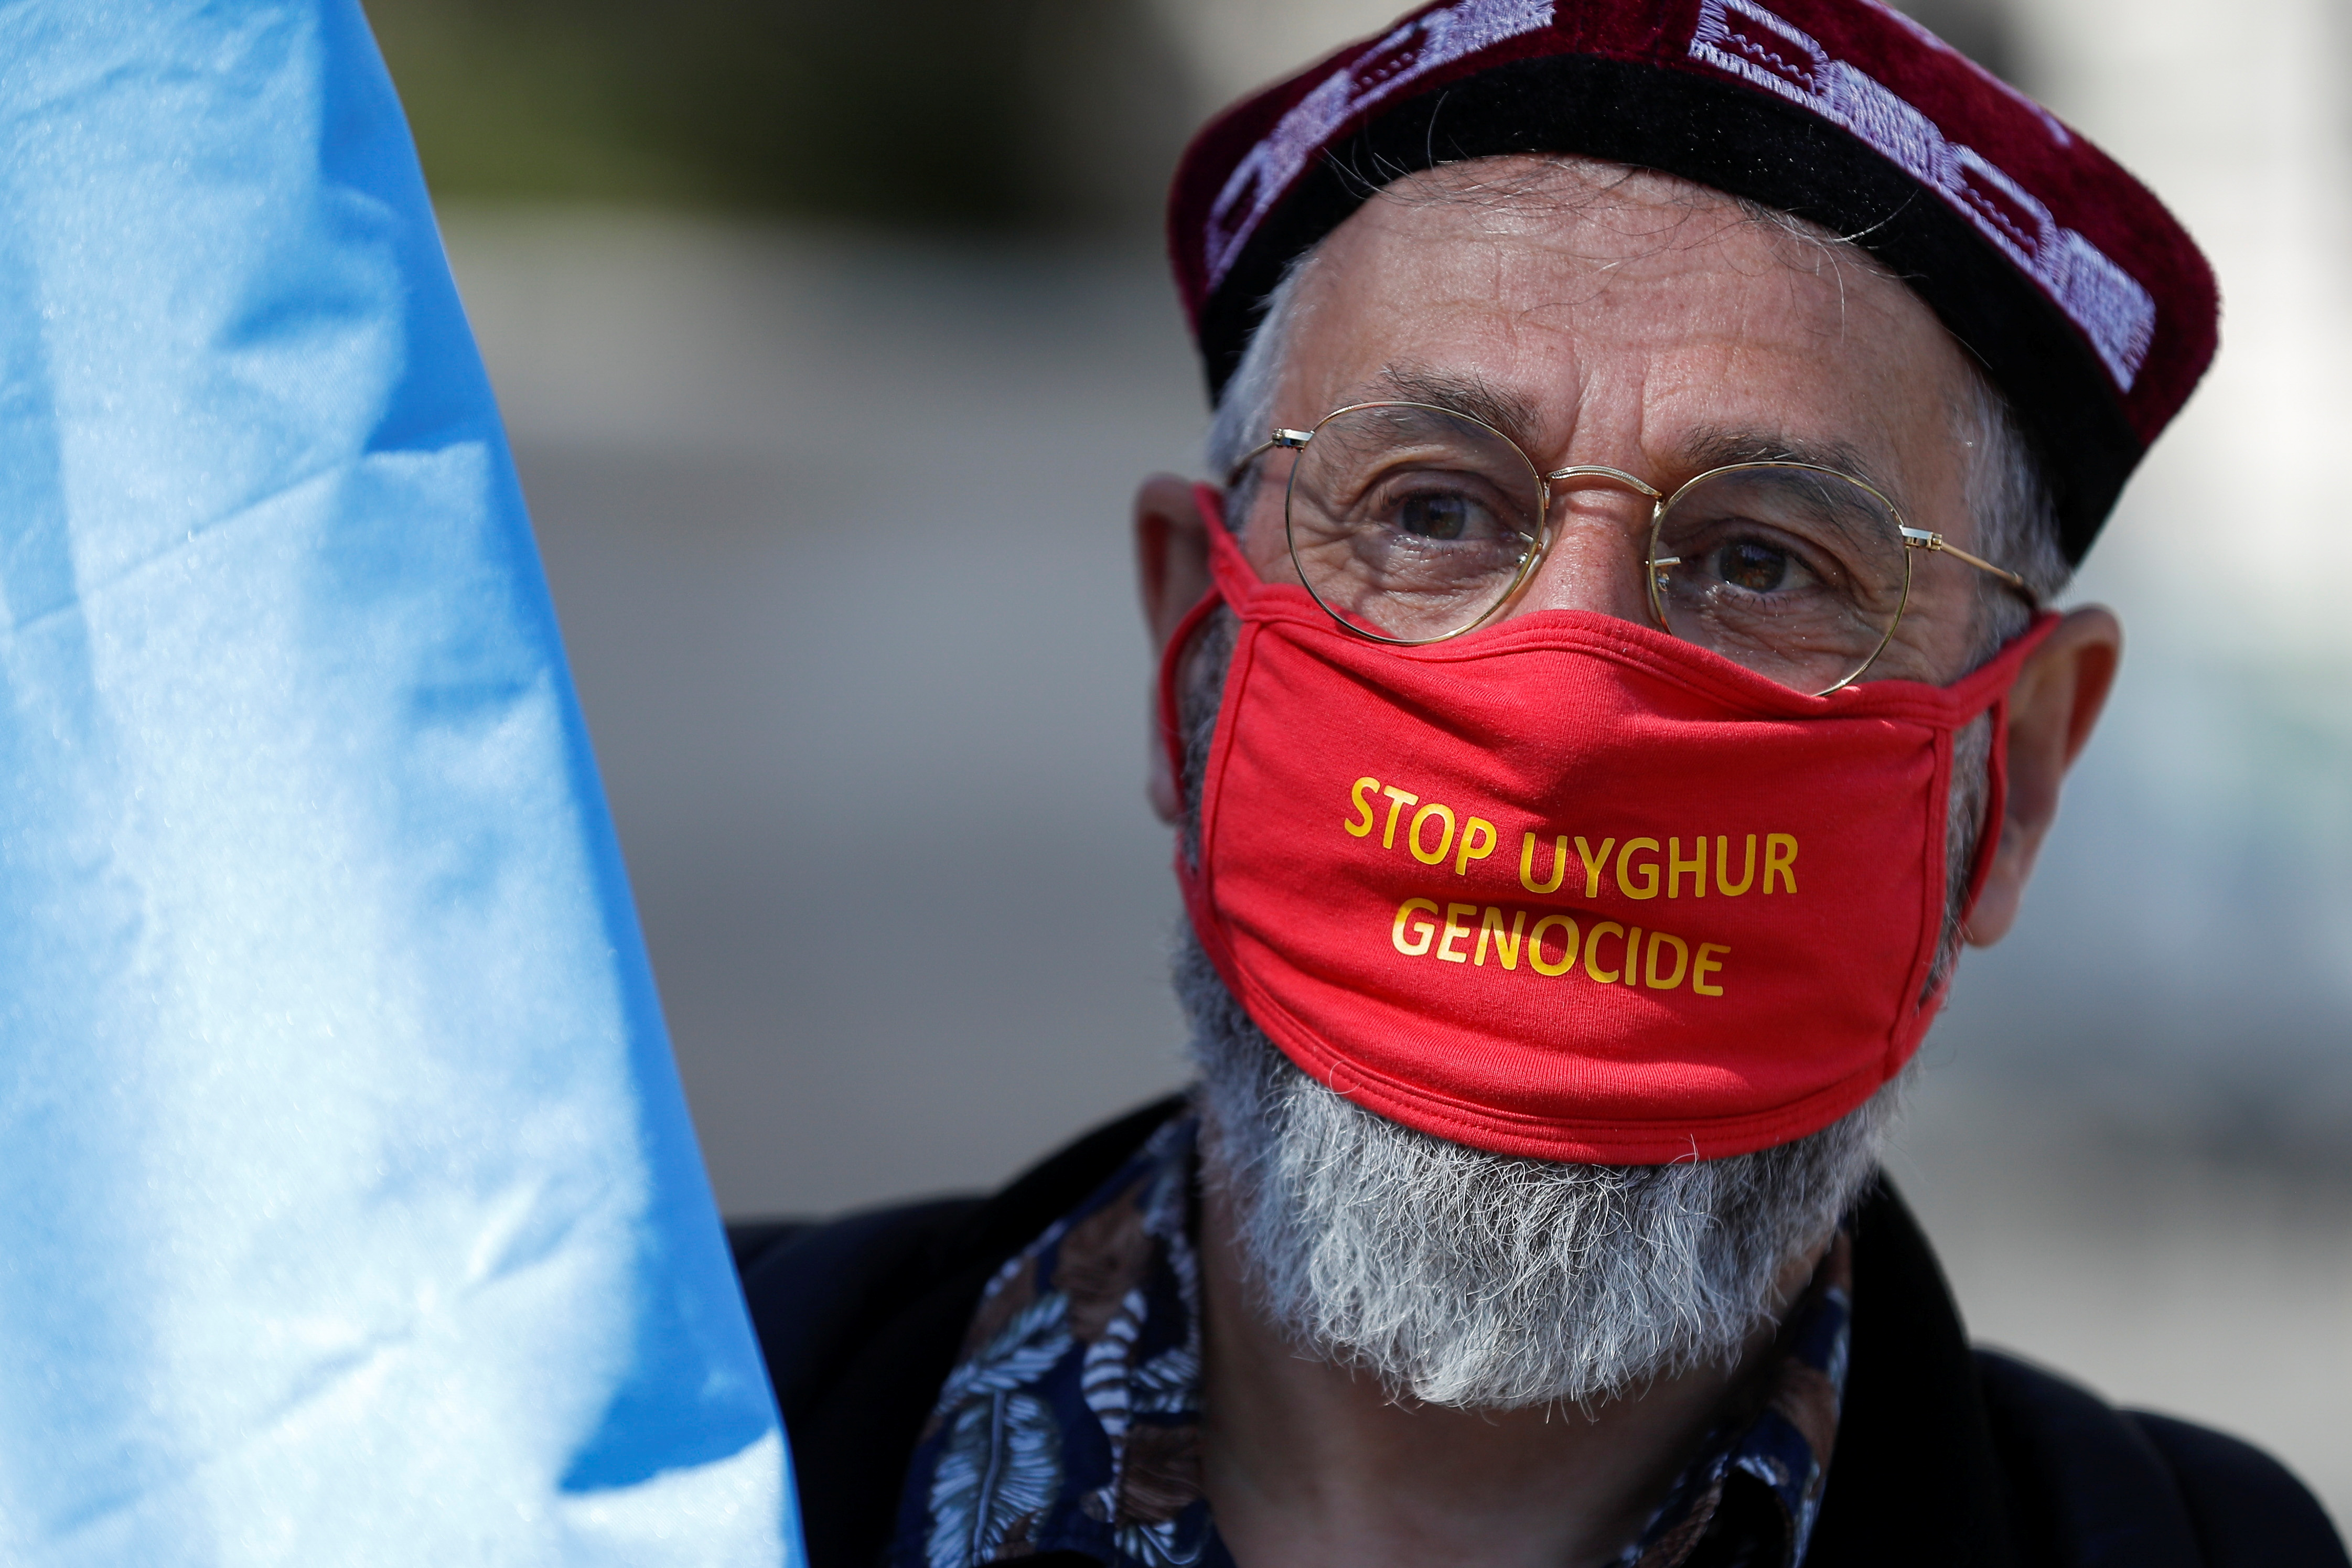 A demonstrator wears a face mask as he attends a protest against Uyghur genocide, in London, Britain April 22, 2021. REUTERS/Peter Nicholls